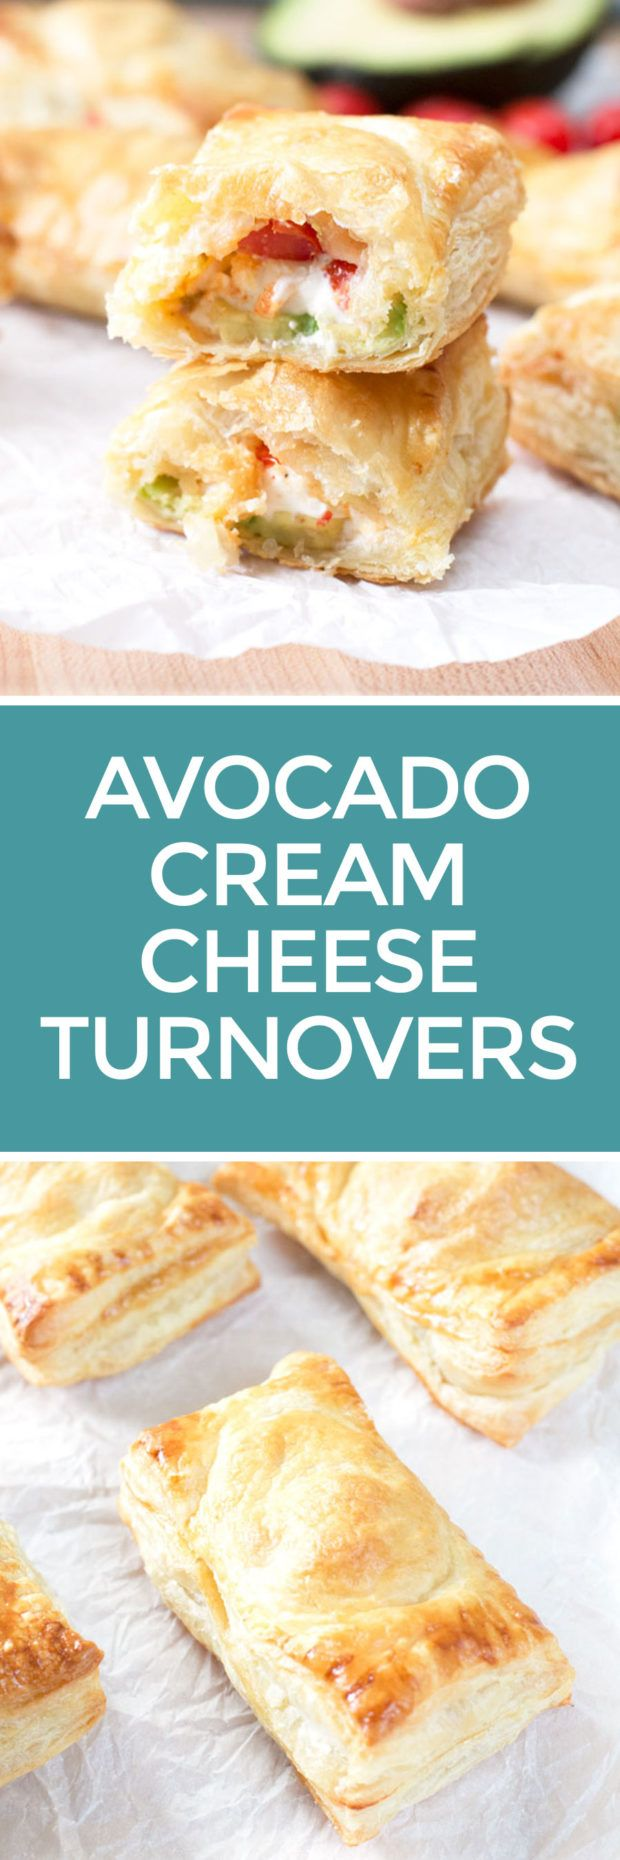 Avocado Cream Cheese Turnovers – Cake 'n Knife